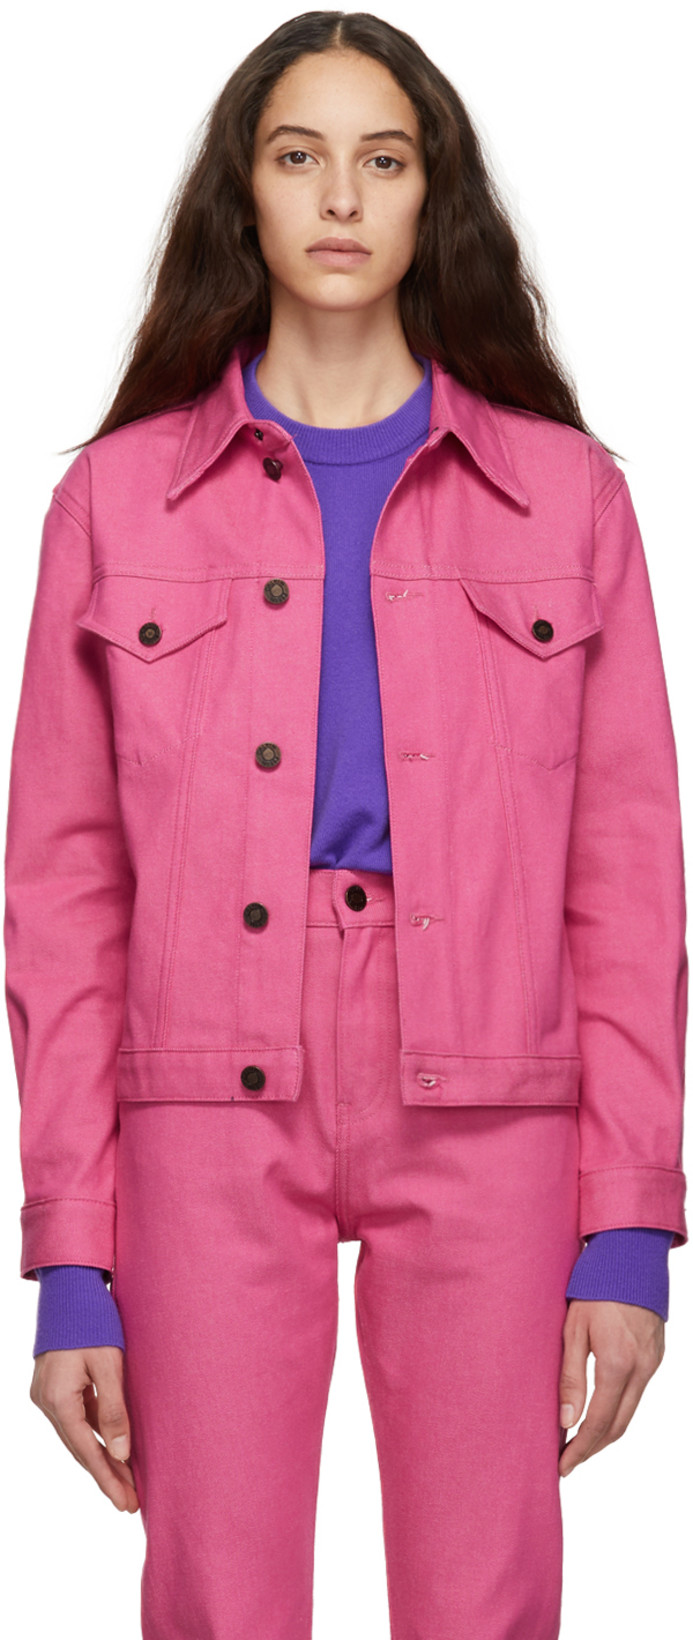 CALVIN KLEIN - Pink Denim Trucker Jacket - $108 USD